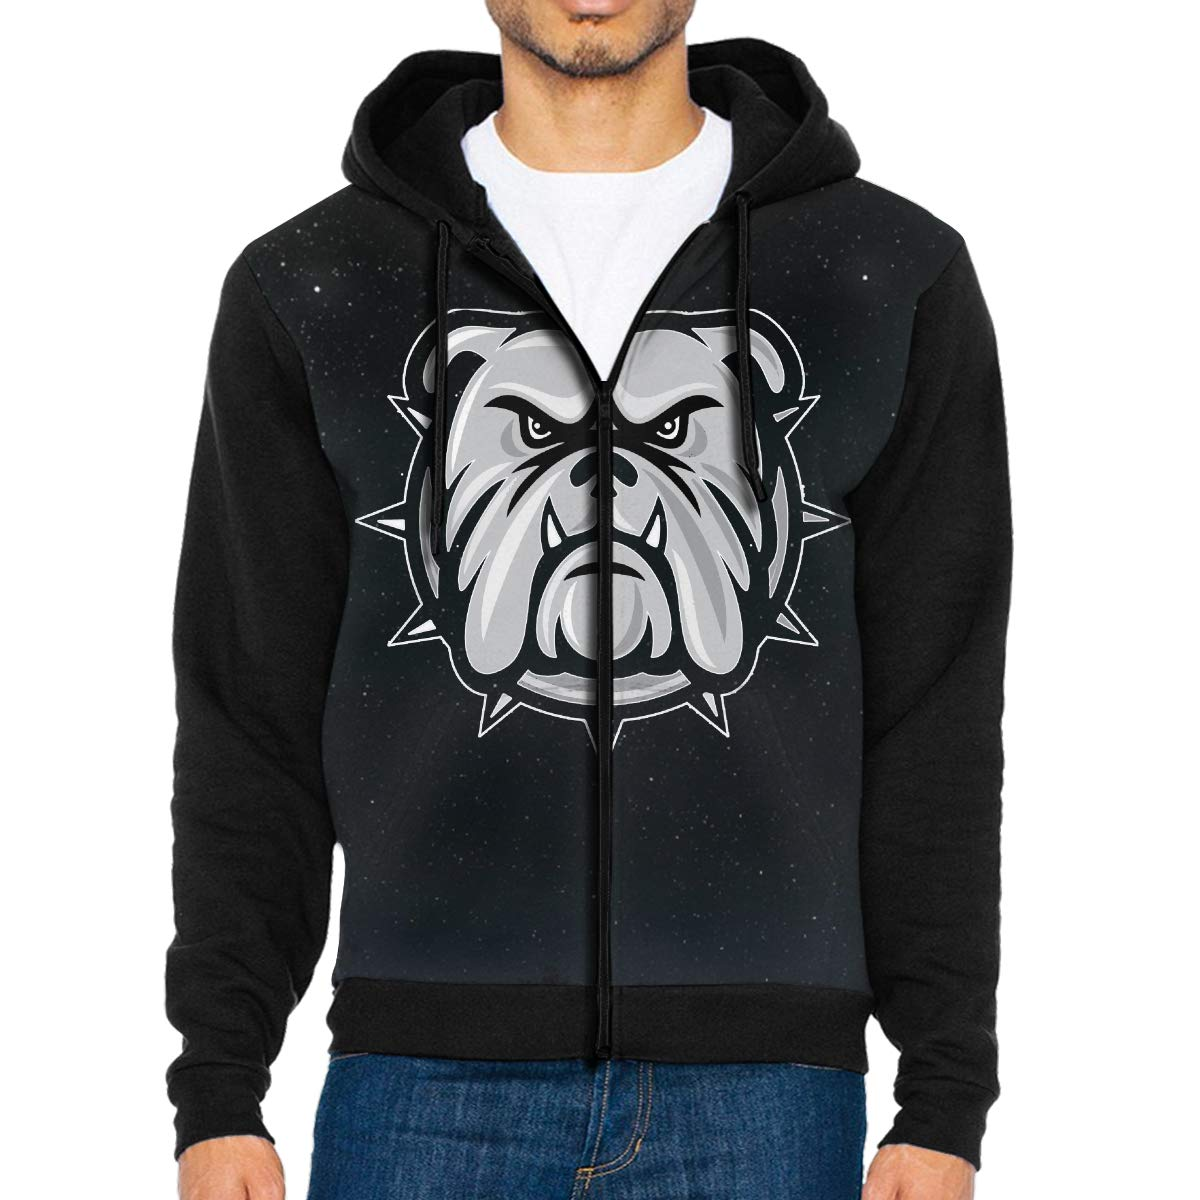 English Bulldog Mens Full-Zip Hoodie Jacket Pullover Sweatshirt